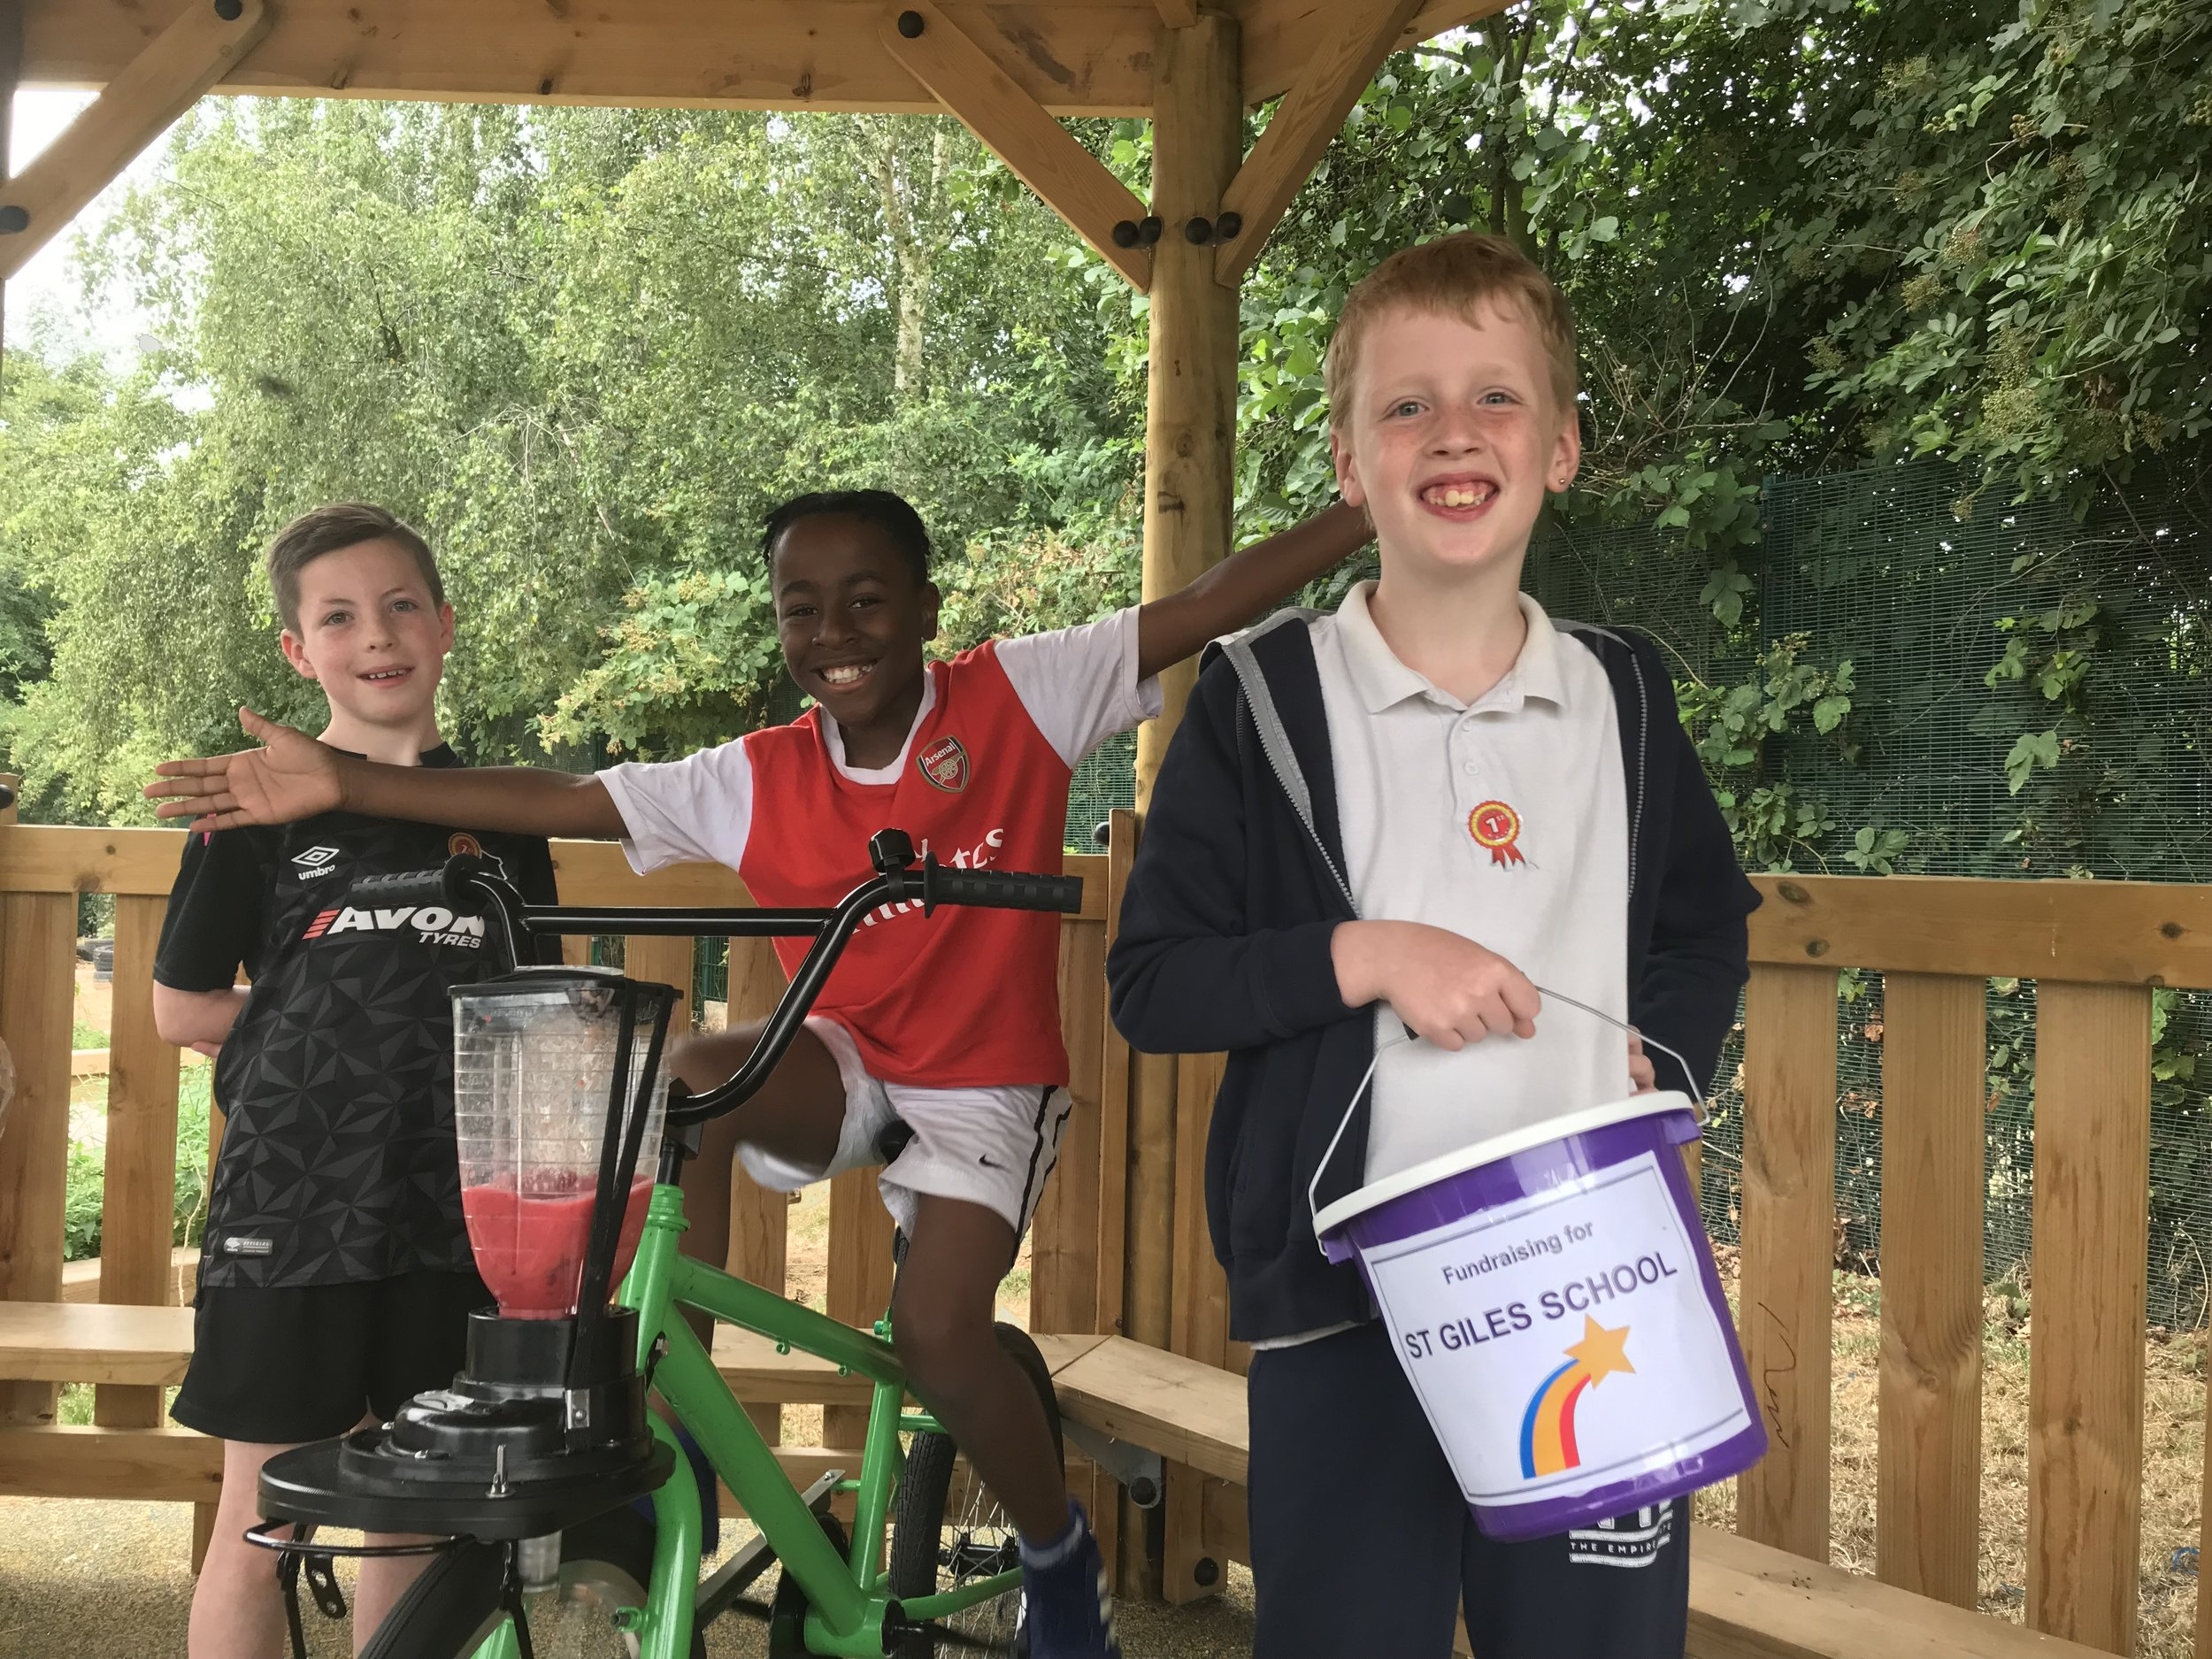 Youngsters from St Giles School in Derby enjoyed the Smoothie Bike, which was provided by catering company Chartwells. Penguin PR: public relations, media and communications